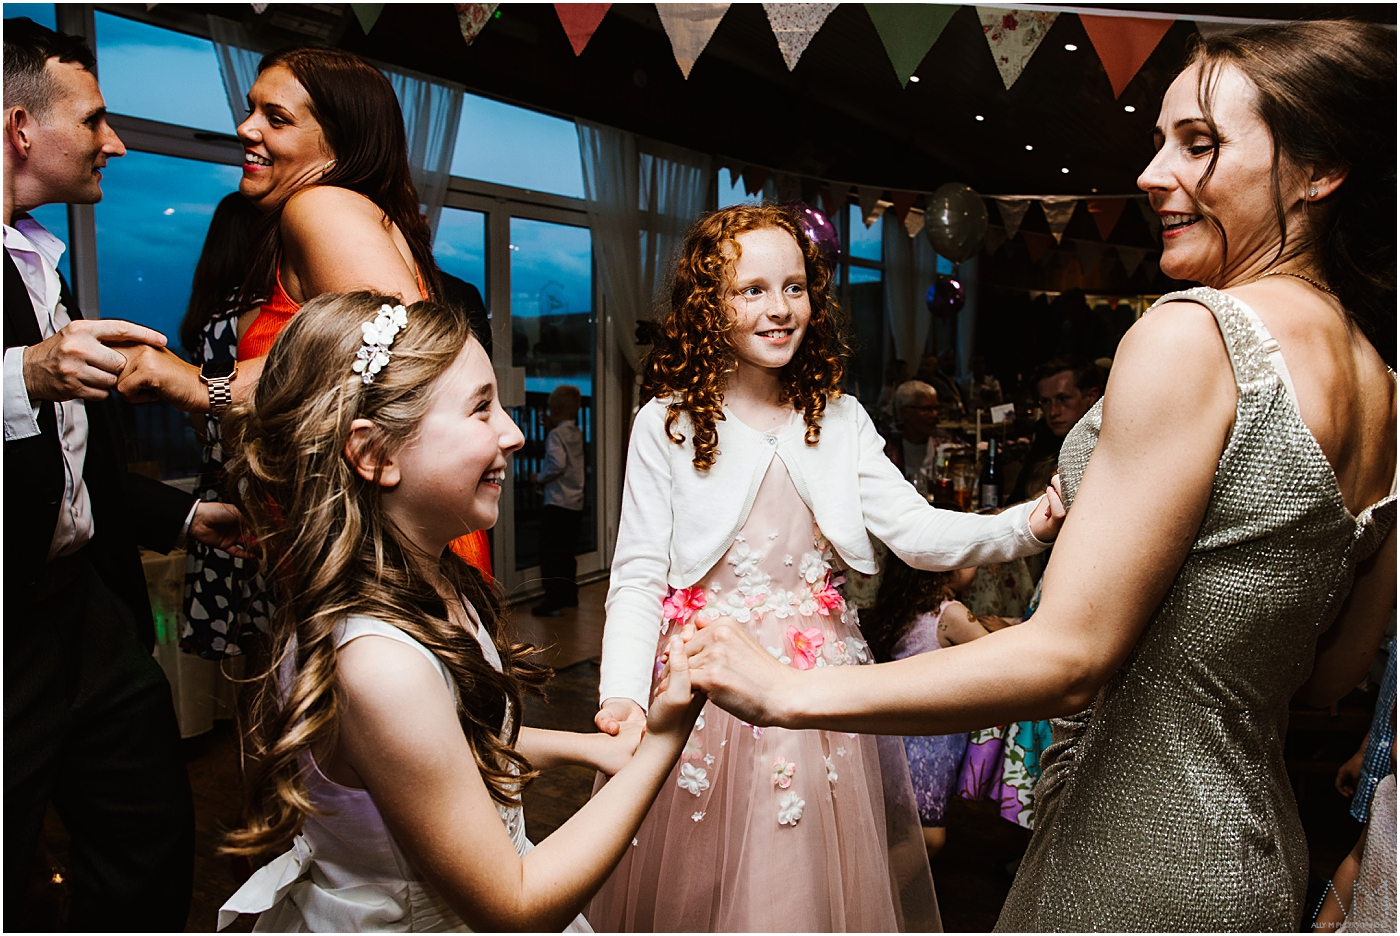 Young girls dancing with teh bride